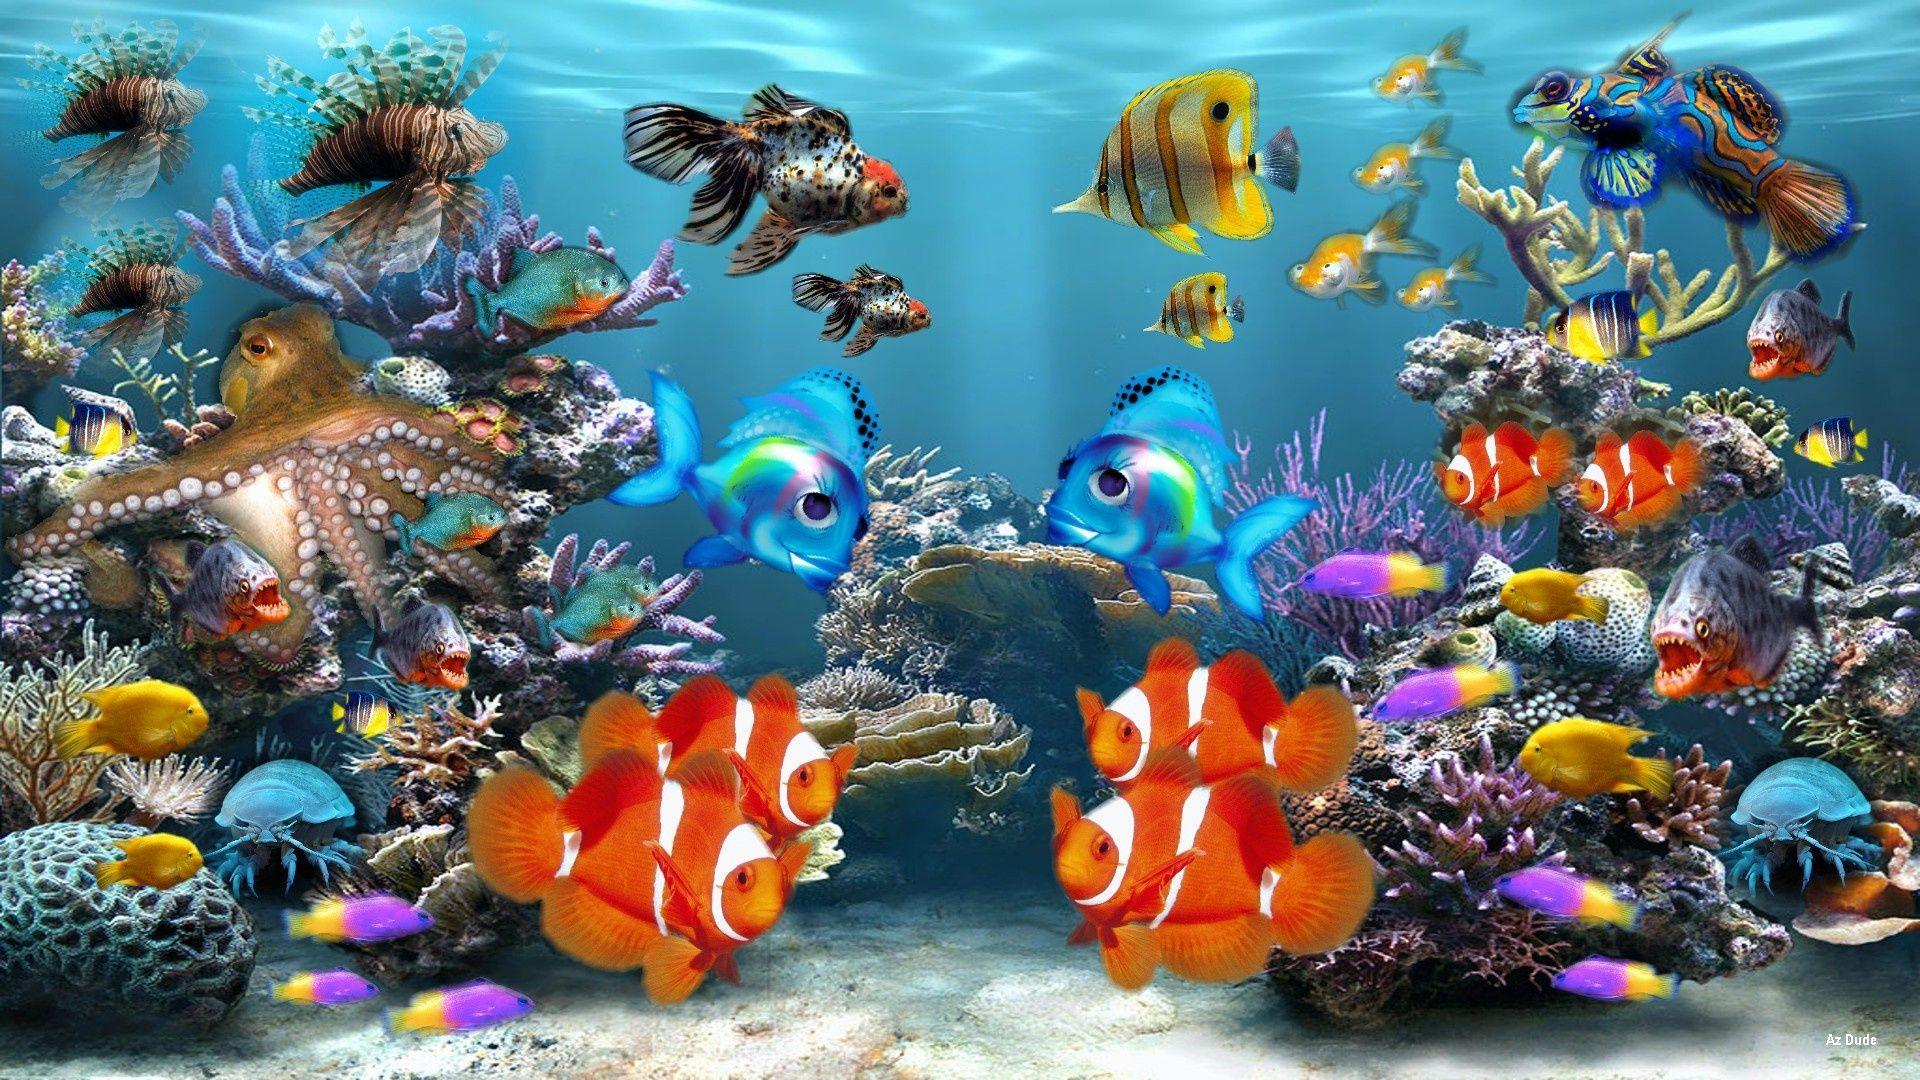 Pin By Emily Blunt On Nature S Beauty Aquarium Live Wallpaper Fish Wallpaper Tropical Wallpaper